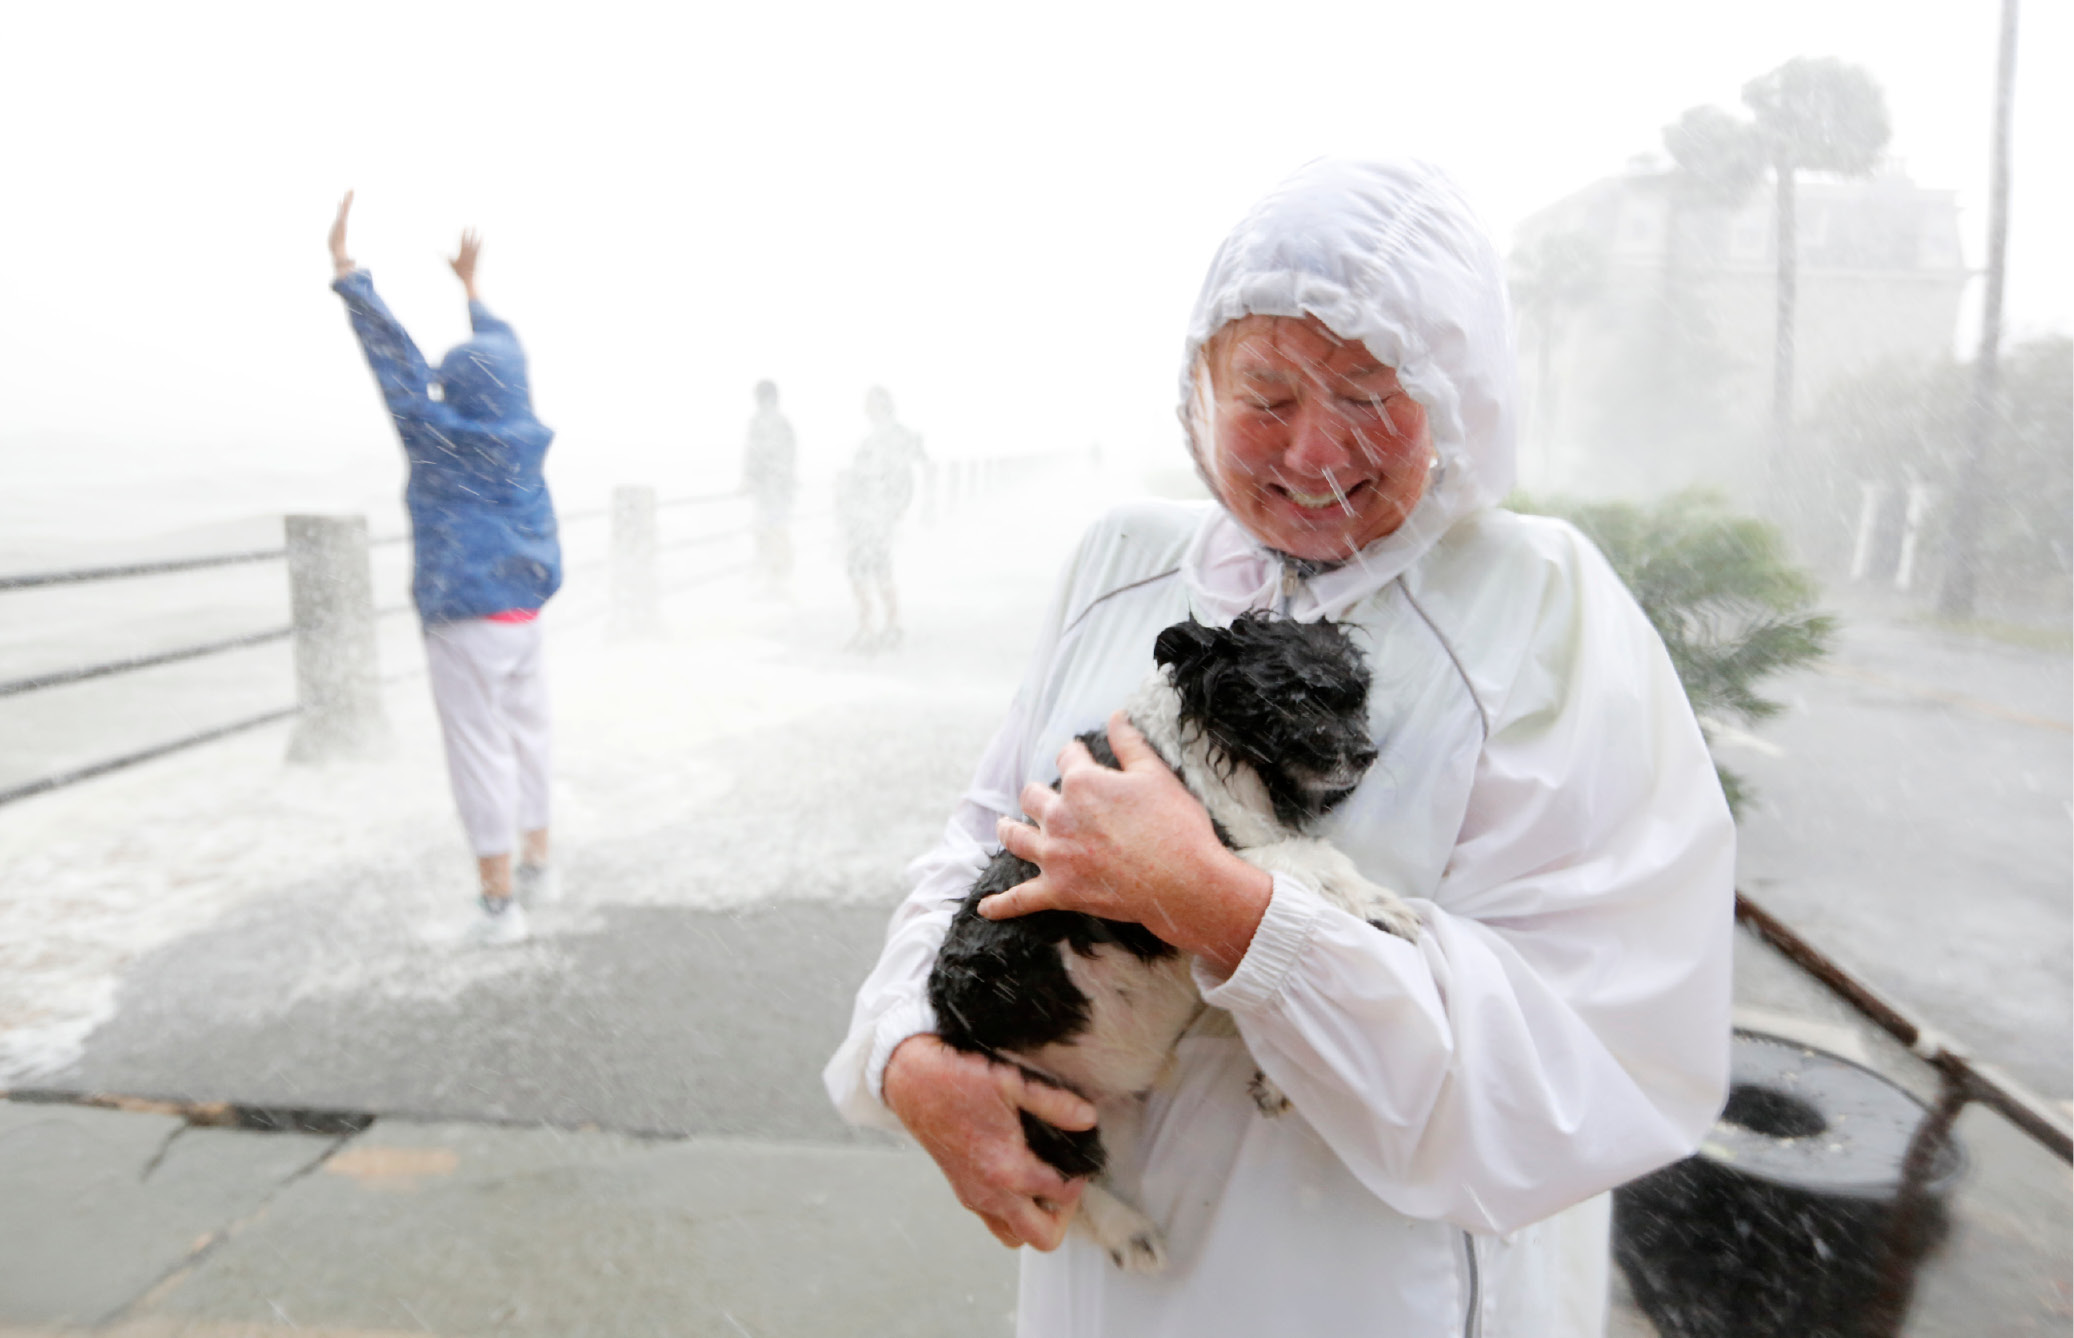 A pet owner protects her dog as pedestrians prepare for waves crashing over The Battery as Hurricane Irma hits Charleston, S.C., Monday, Sept. 11, 2017. (AP Photo/Mic Smith)